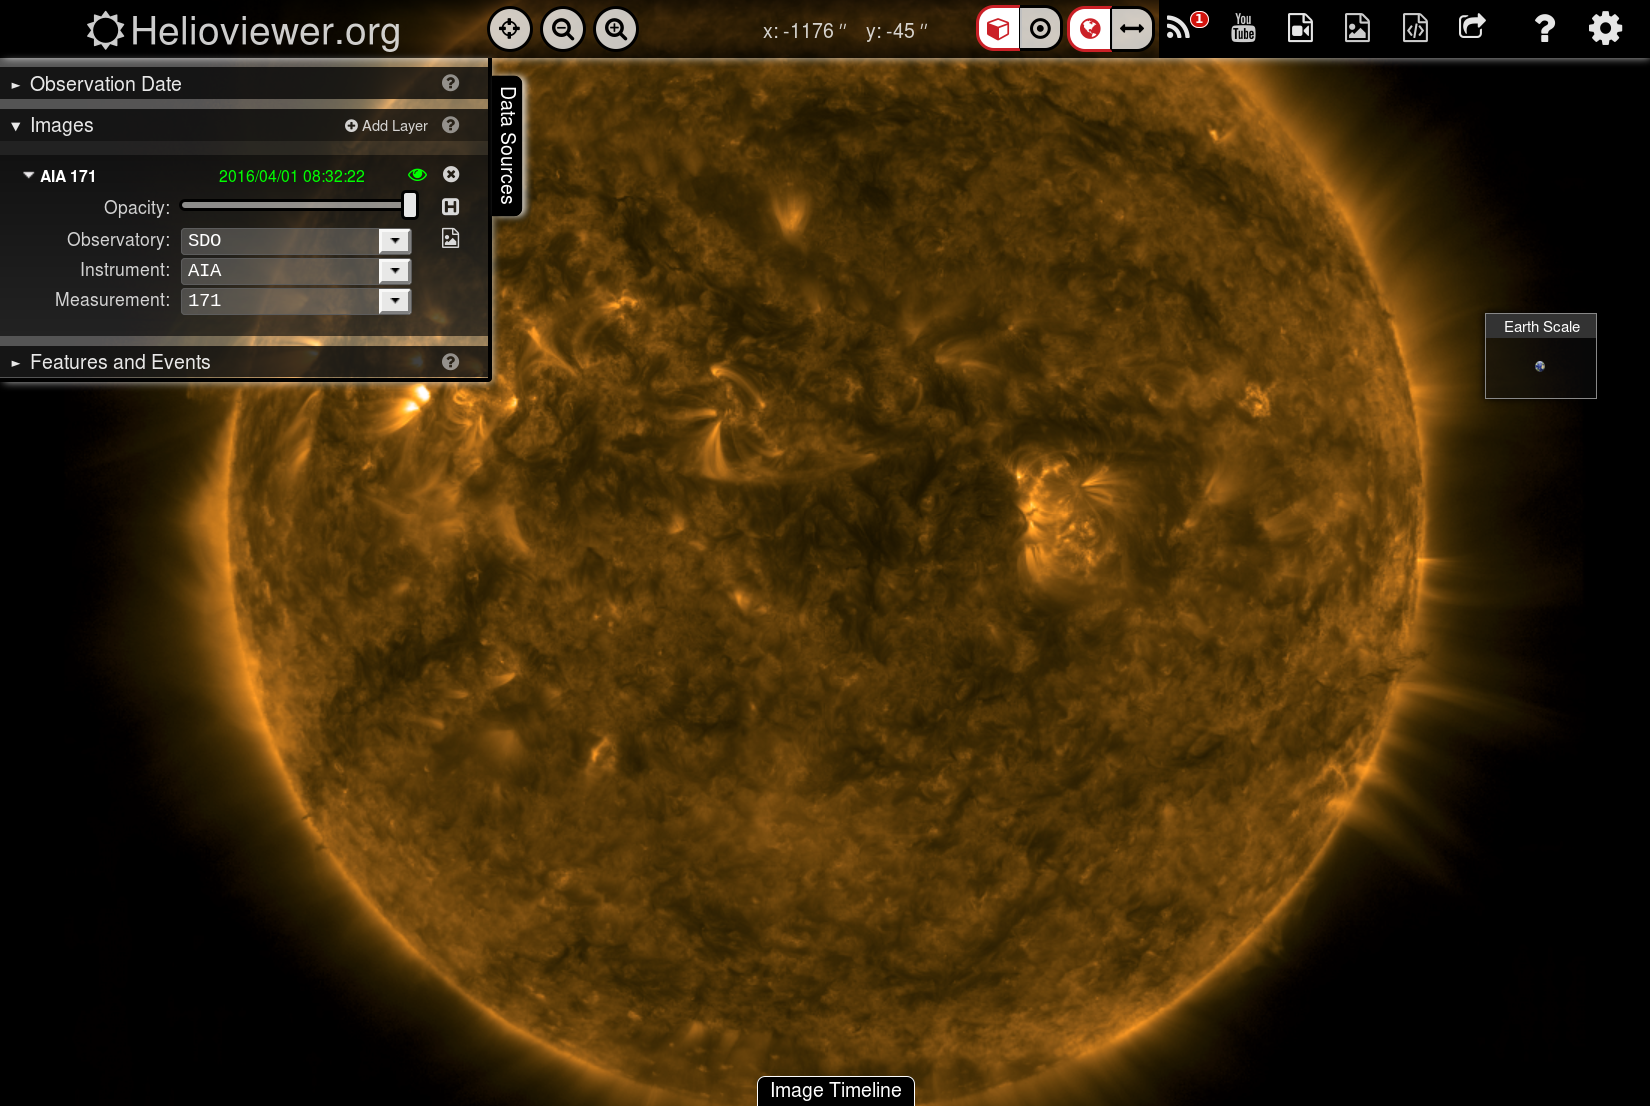 Helioviewer